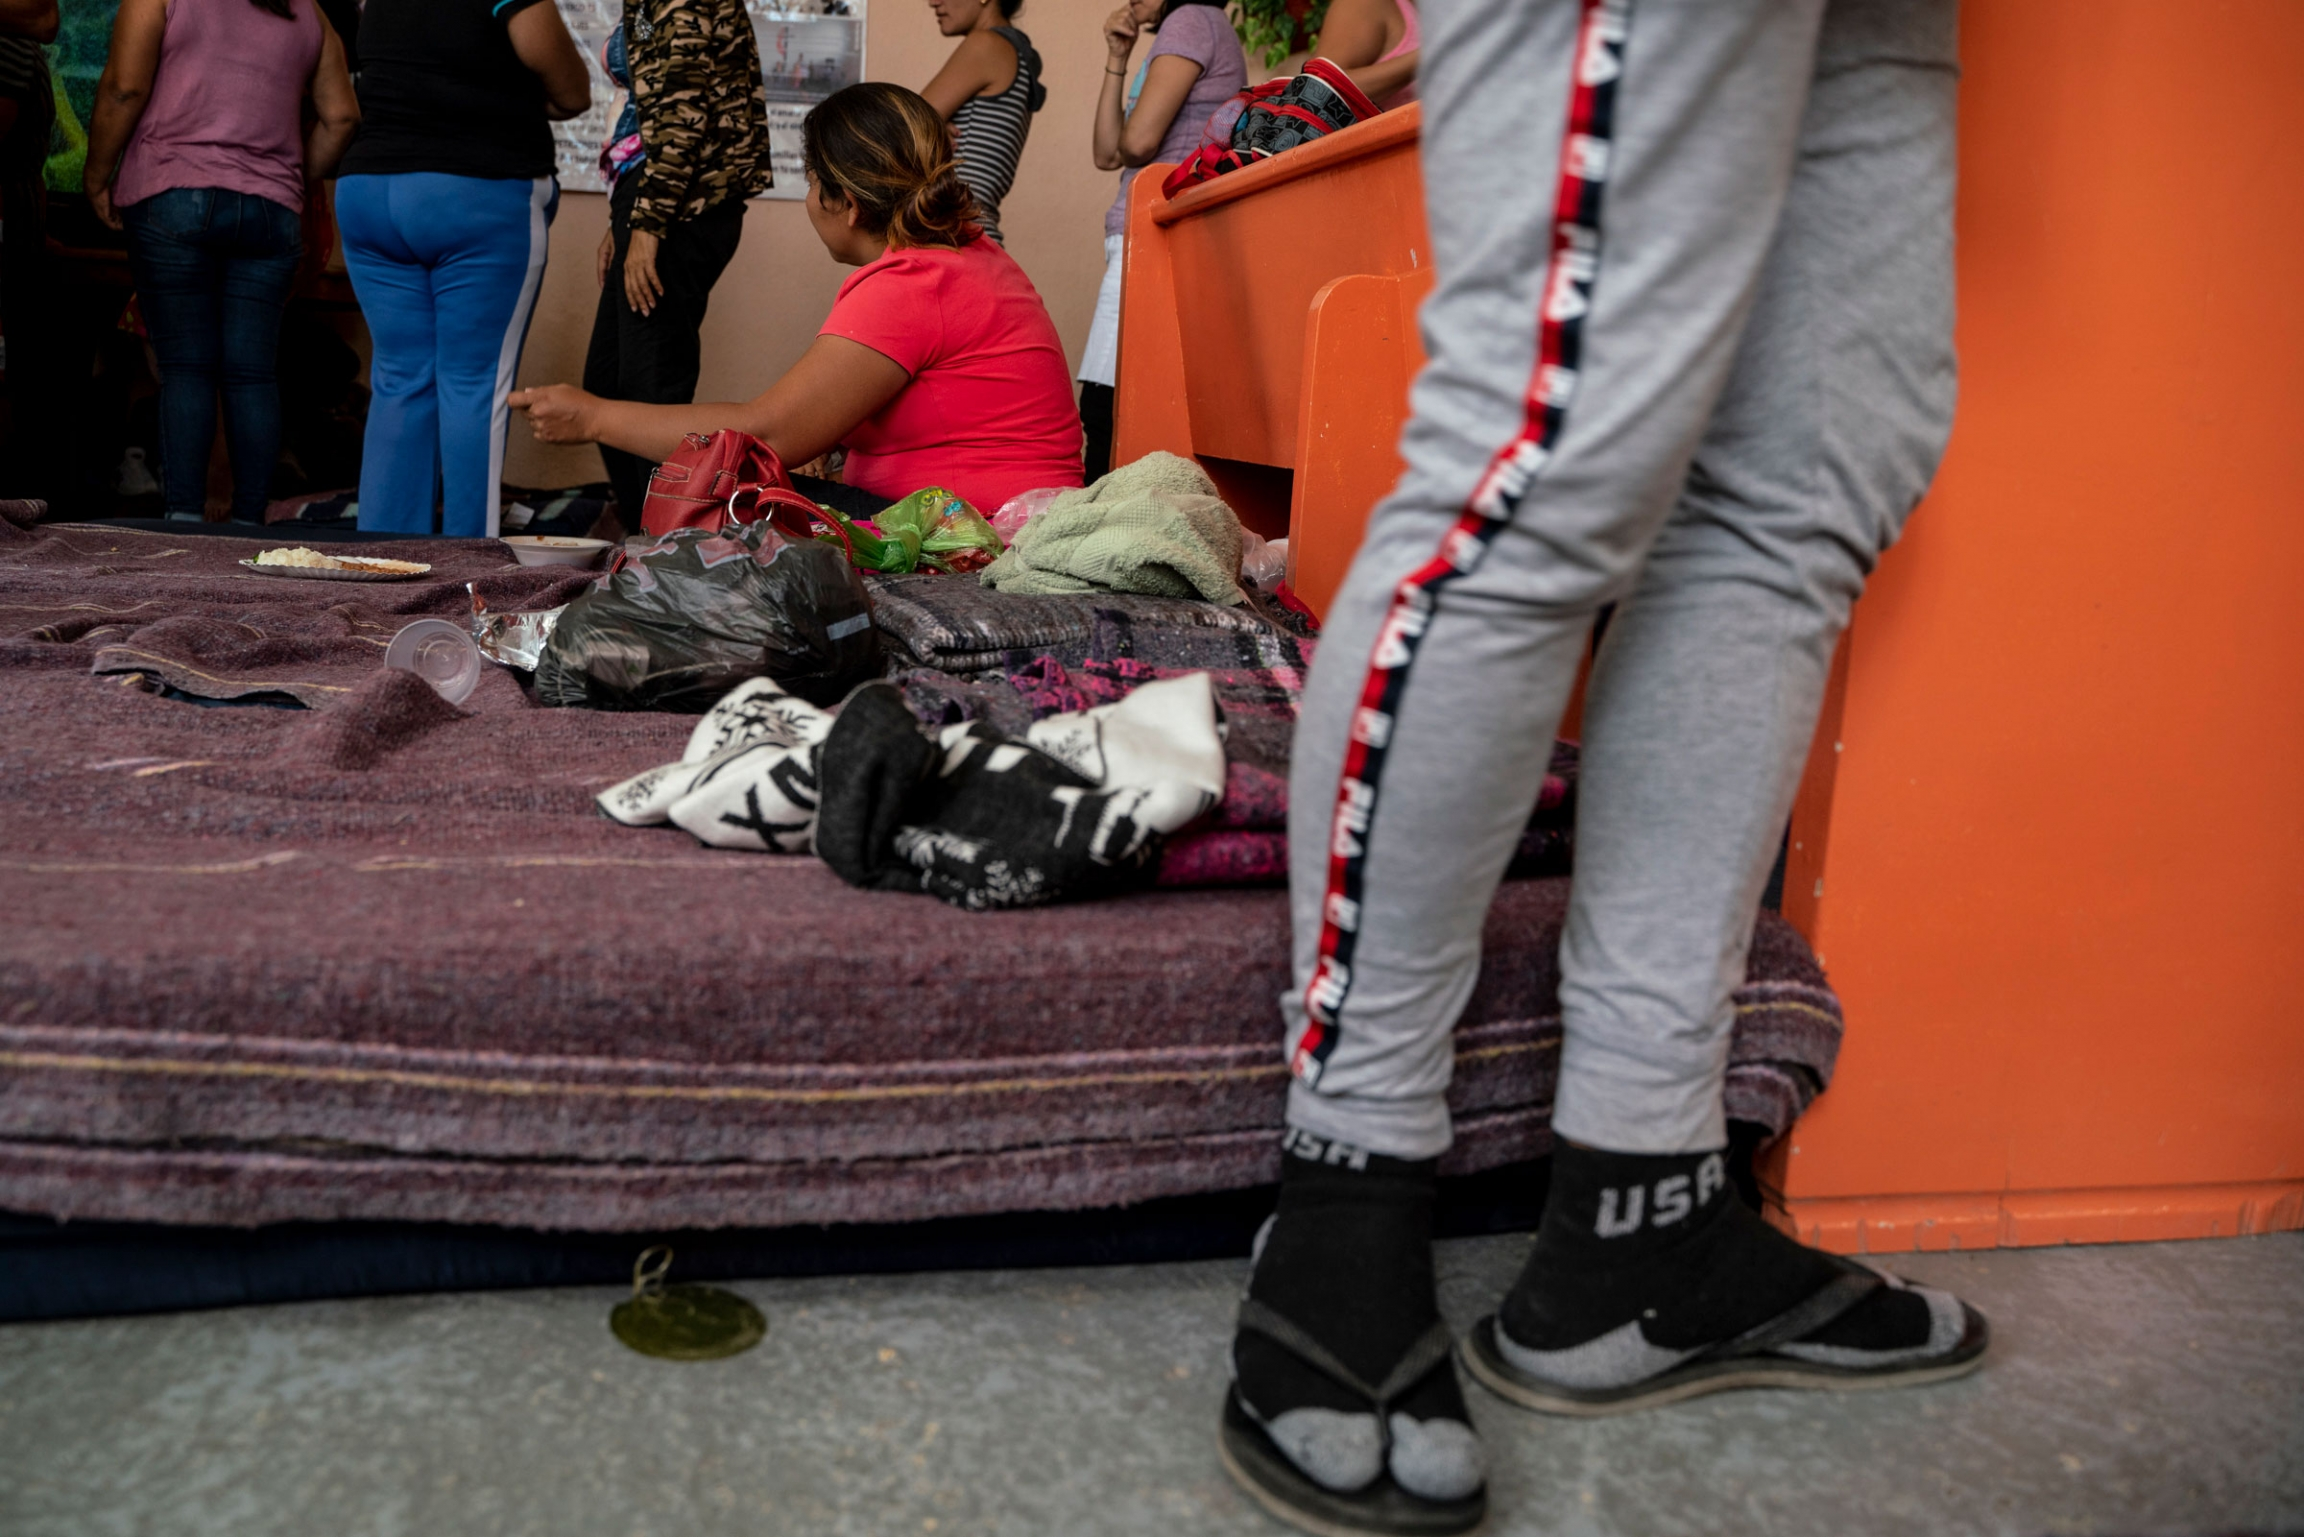 A mattress sits on the floor as people stand around a room.